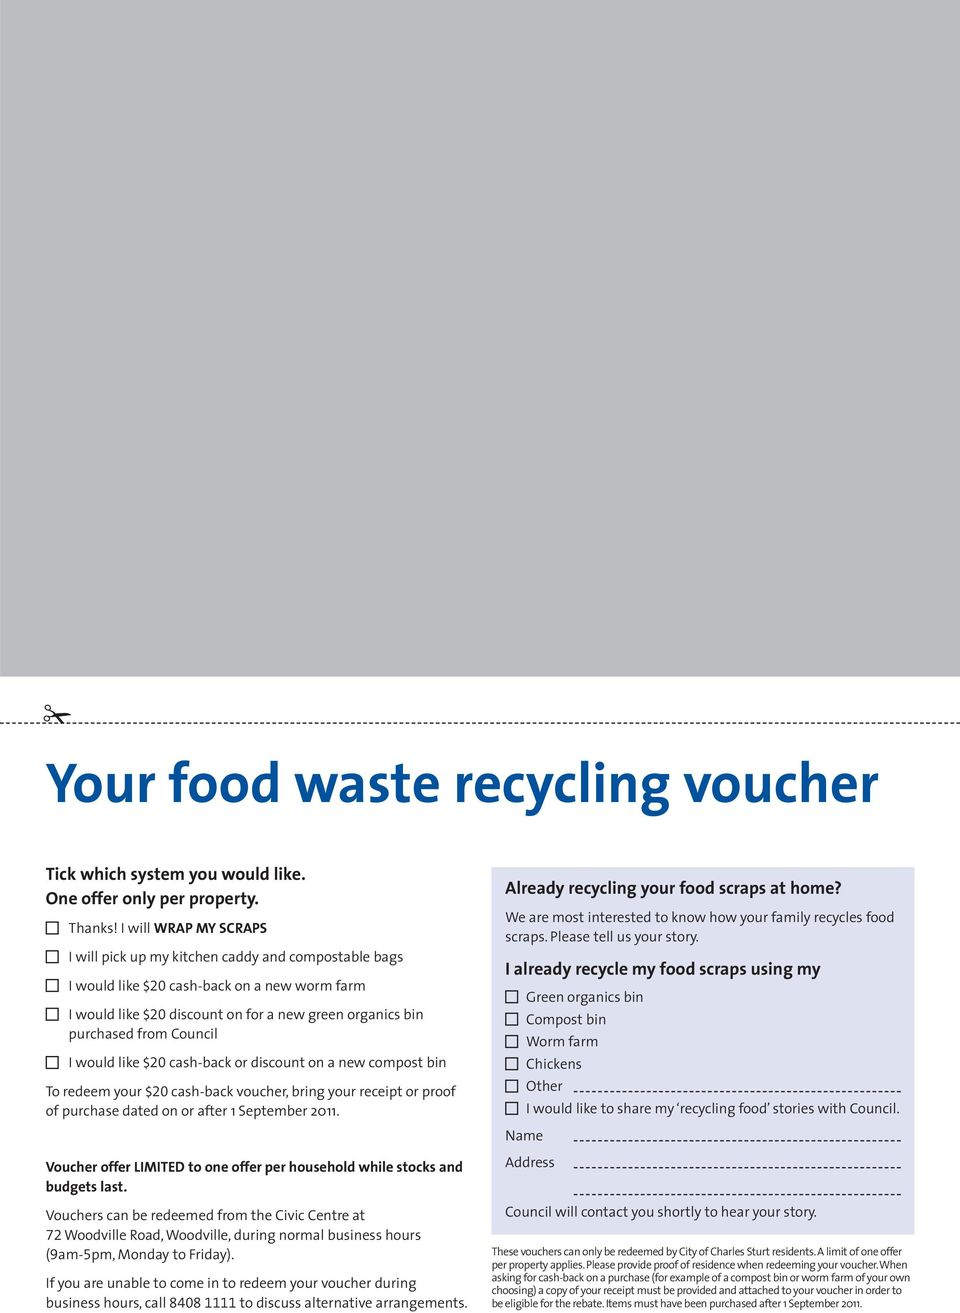 Council I would like $20 cash-back or discount on a new compost bin To redeem your $20 cash-back voucher, bring your receipt or proof of purchase dated on or after 1 September 2011.